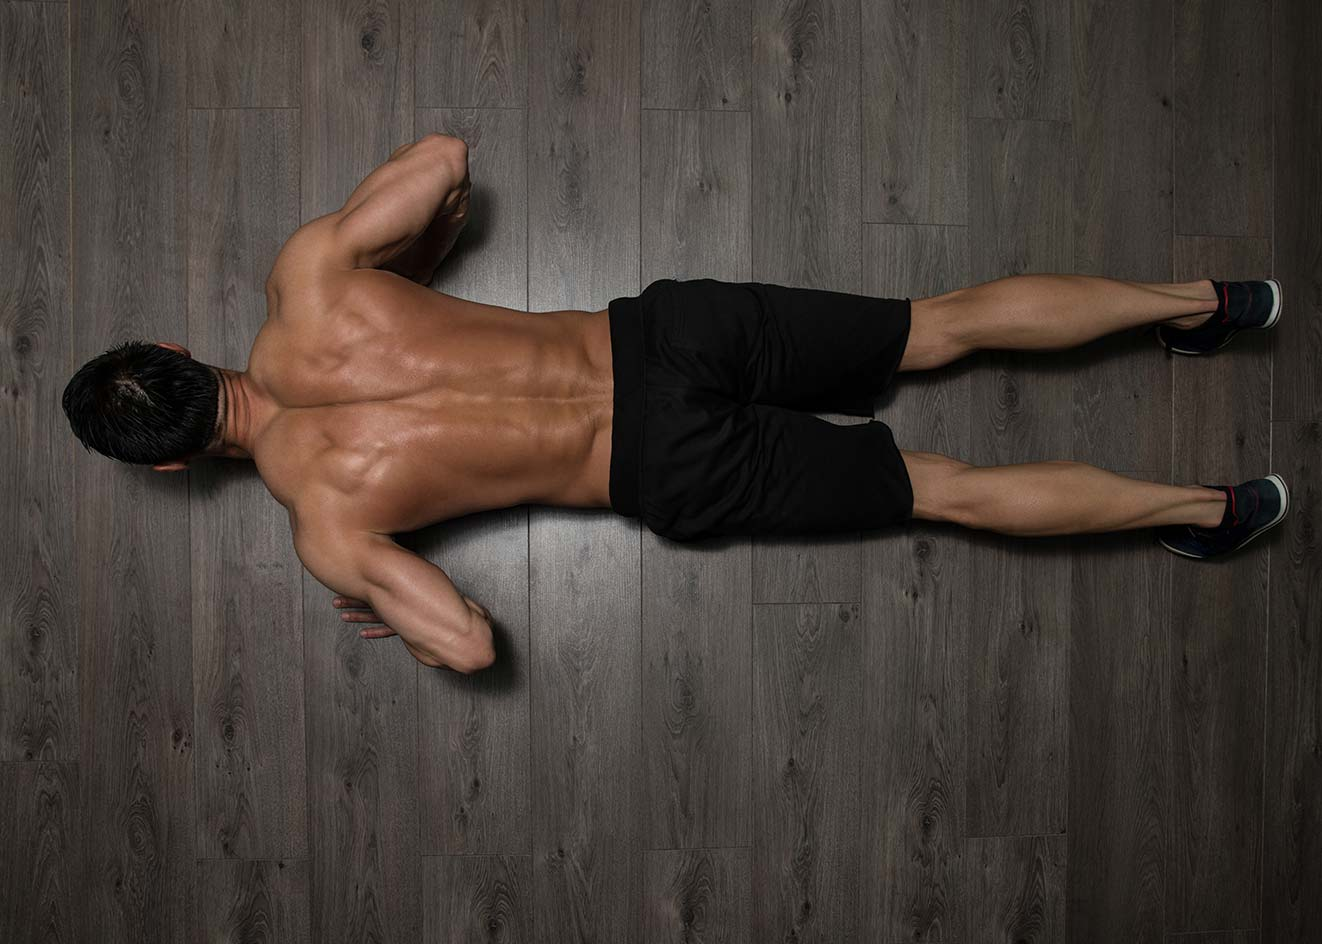 8-Week Workout Plan For Push Up Strength And Power